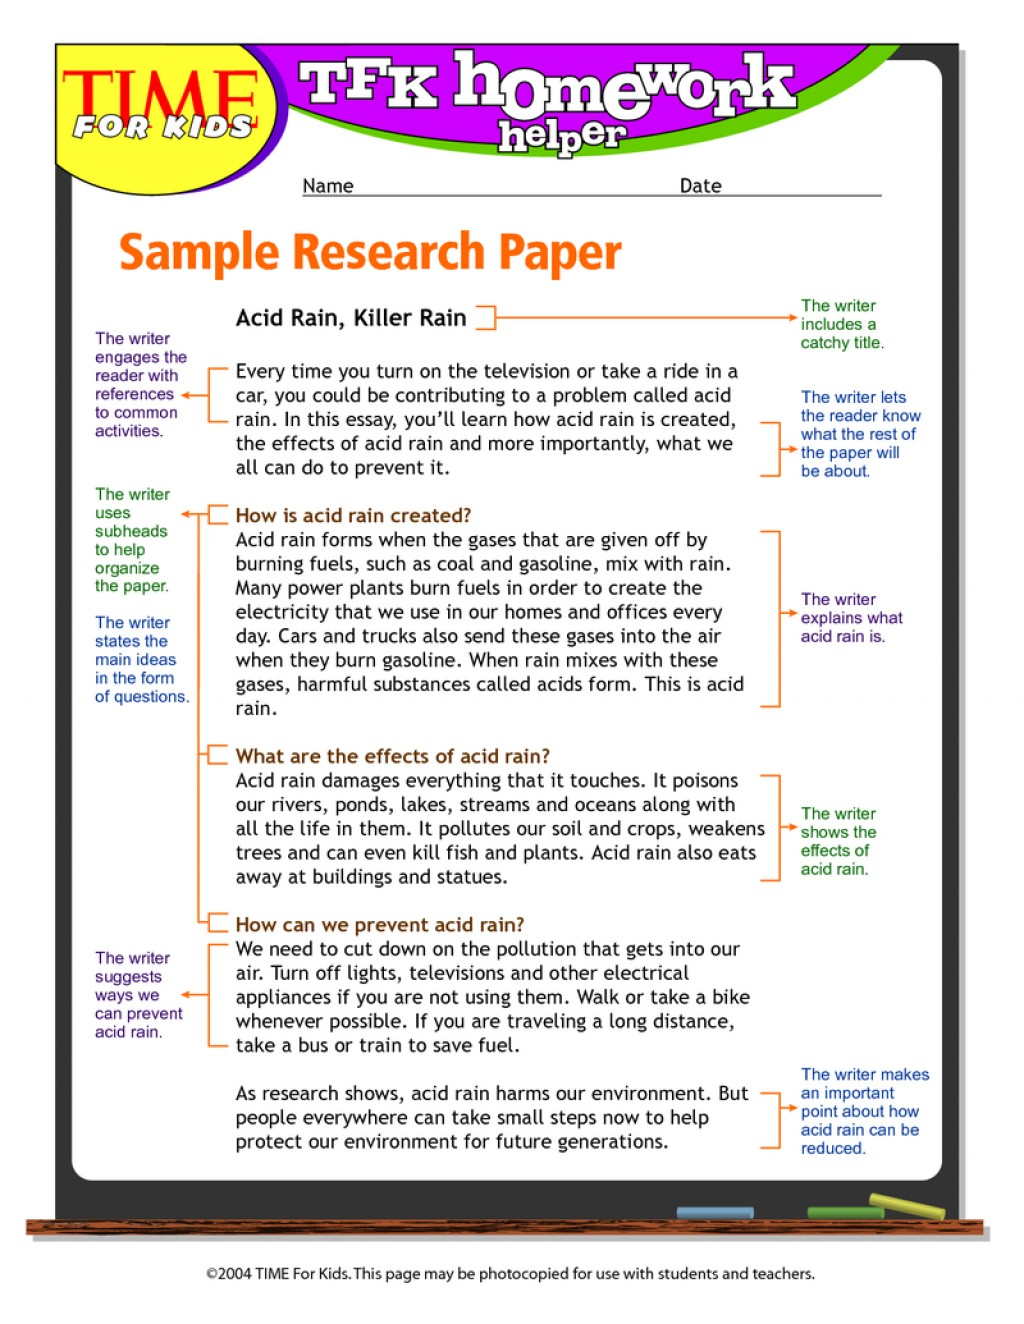 010 Research Paper Creating With Citations And Unusual A References Sources Quizlet Word Module 2 Large